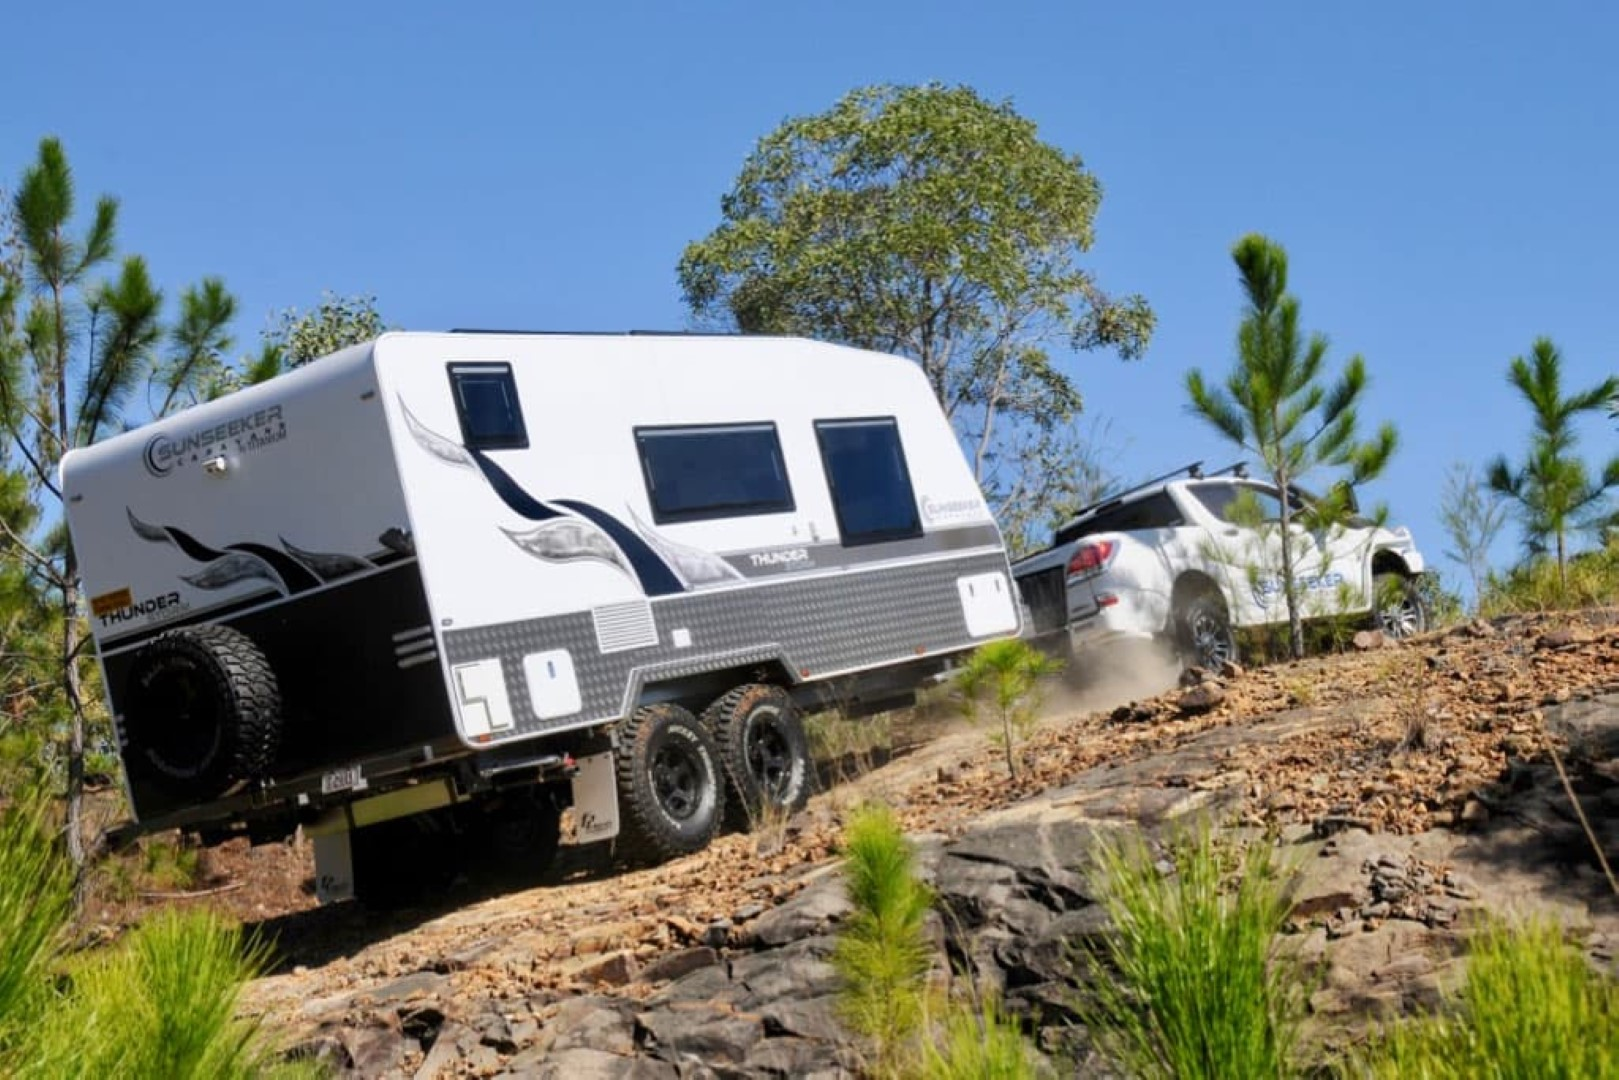 Caravan repairs and modifications